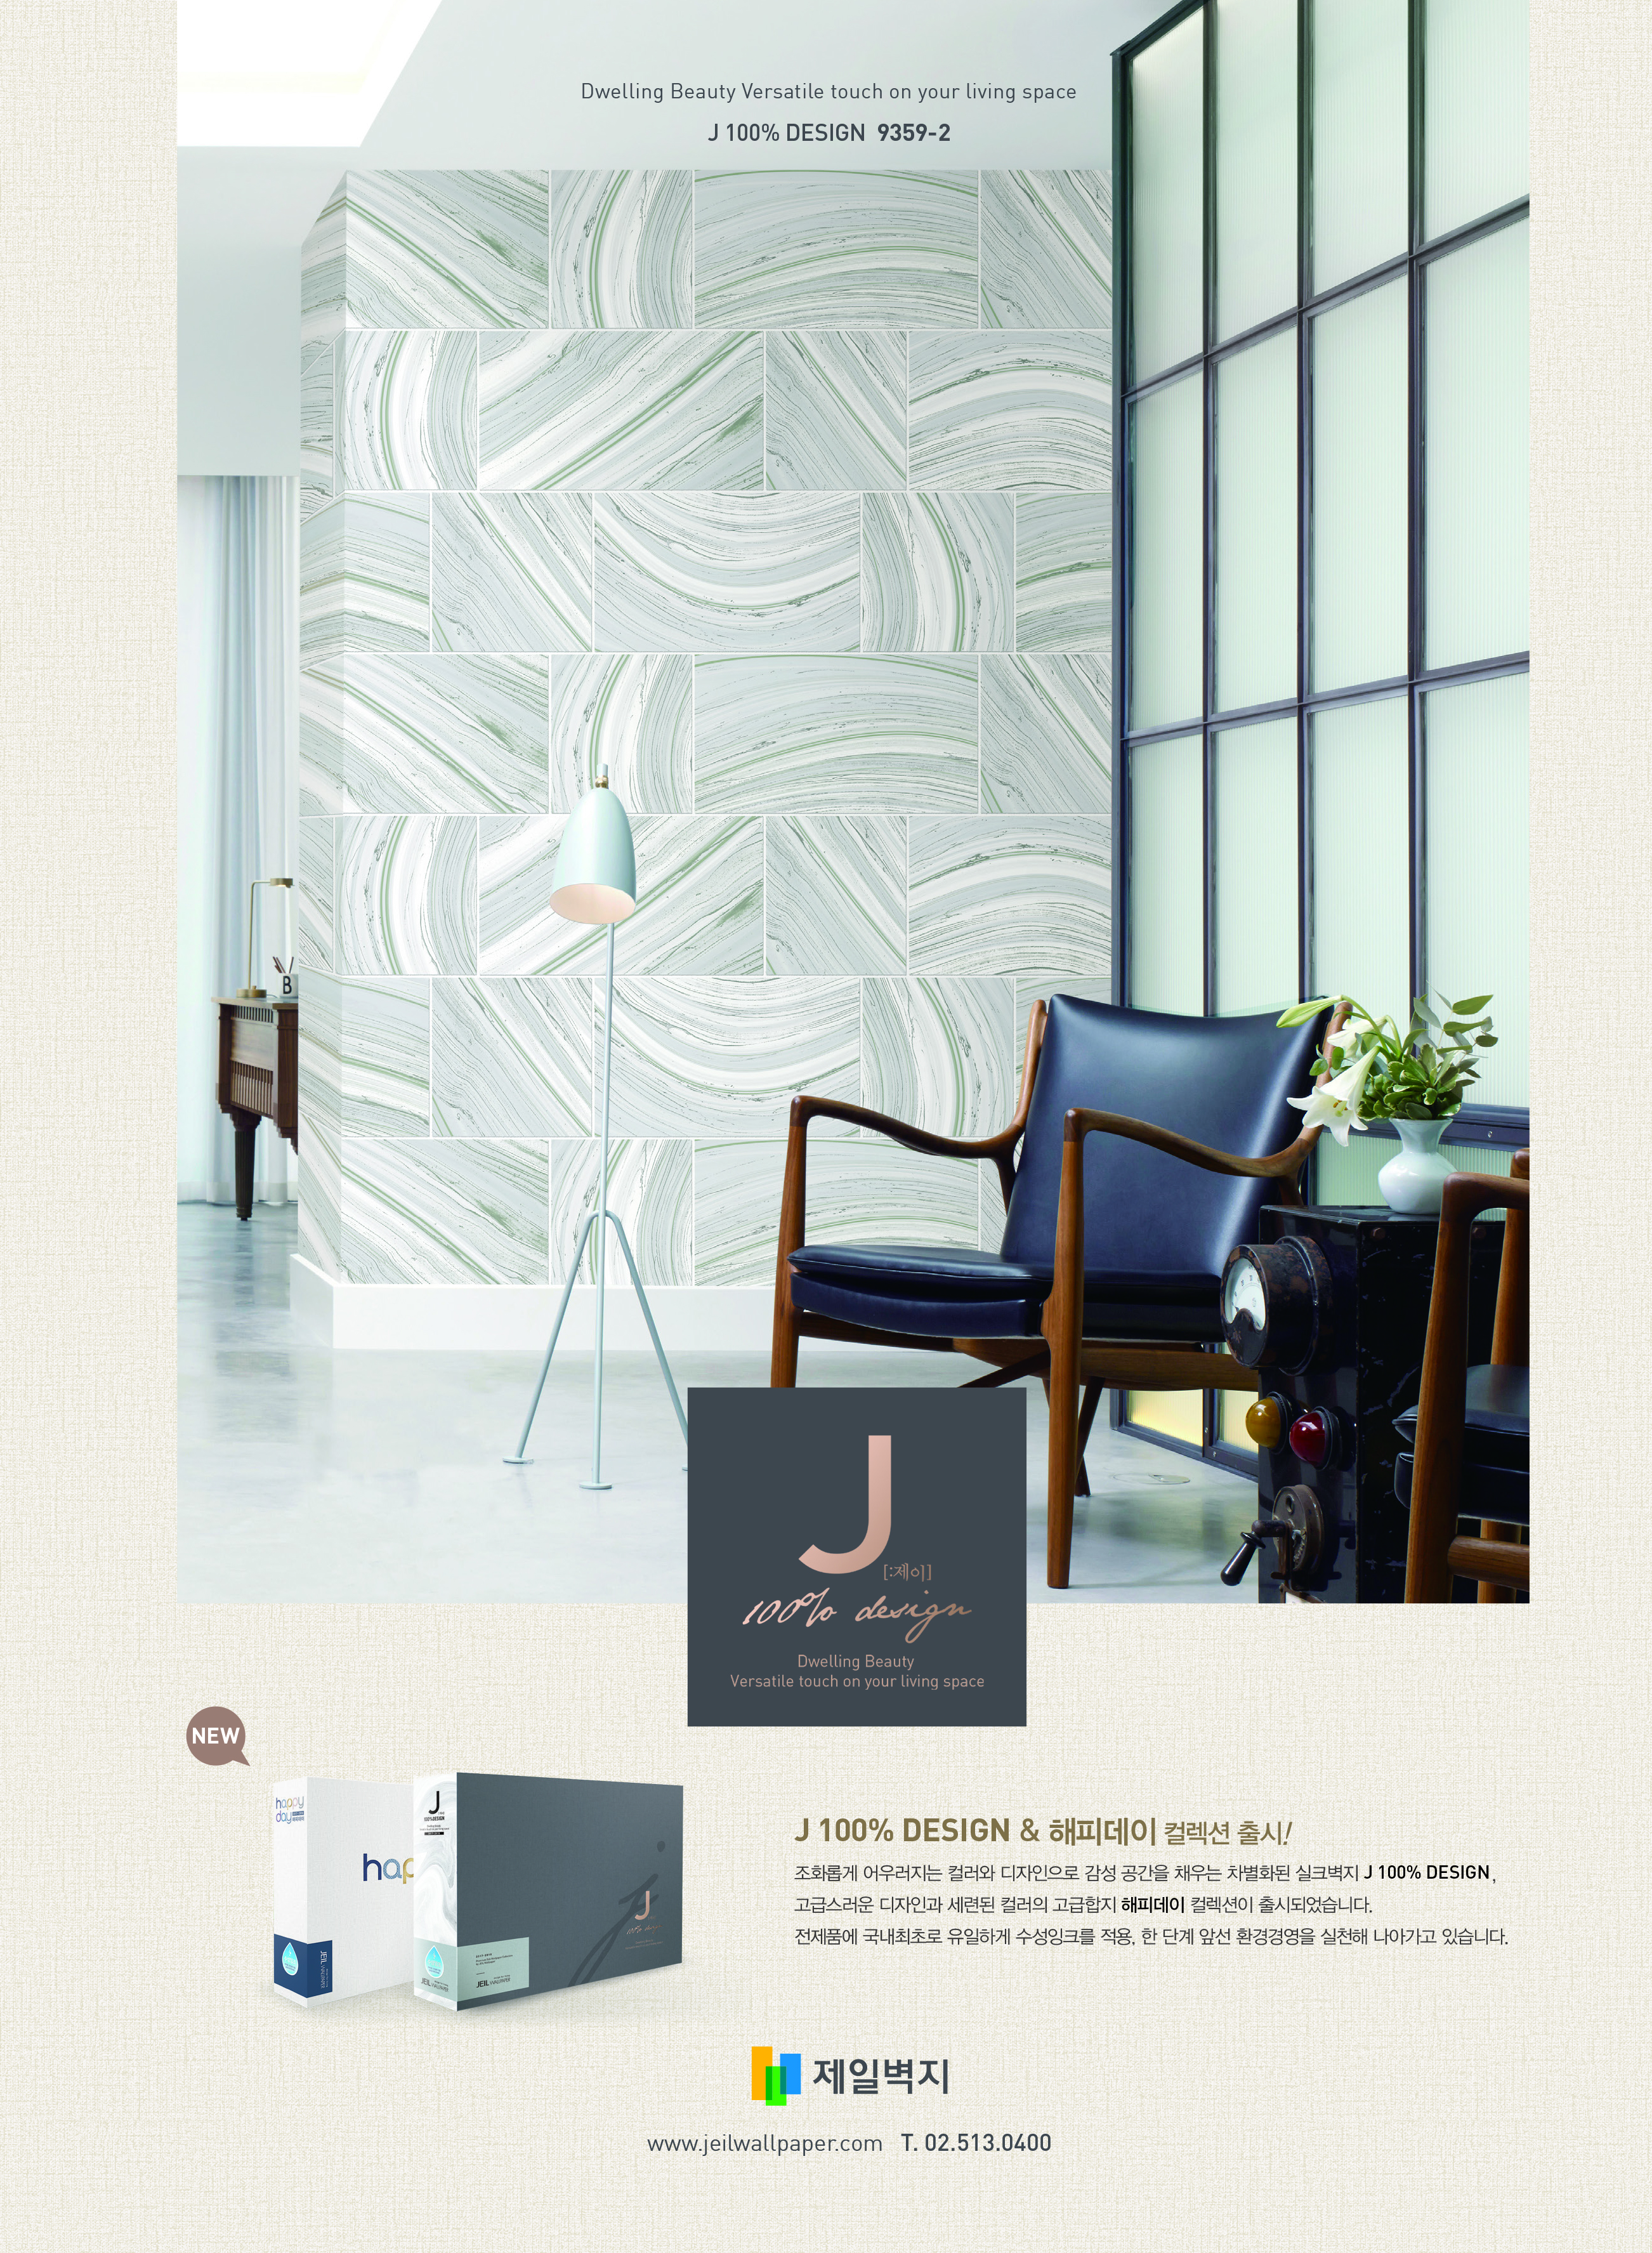 J 100% design / Happyday 출시 J 100% design / Happyday 출시